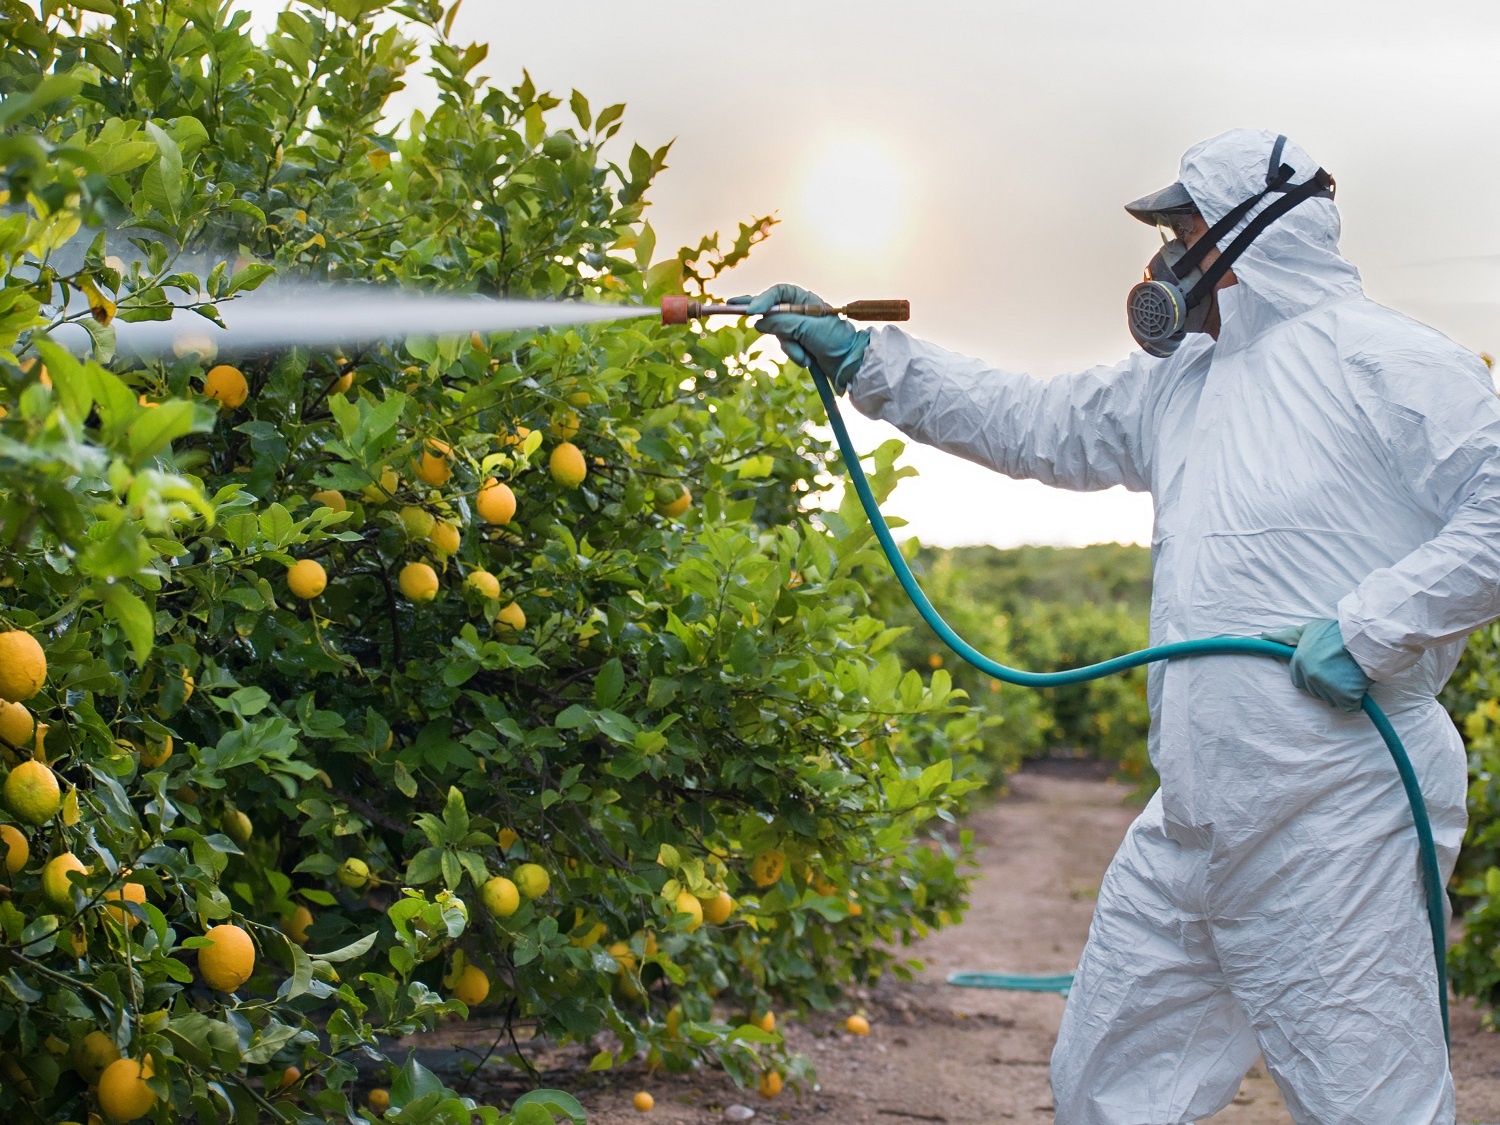 Spraying lemon trees with insecticide in Spain